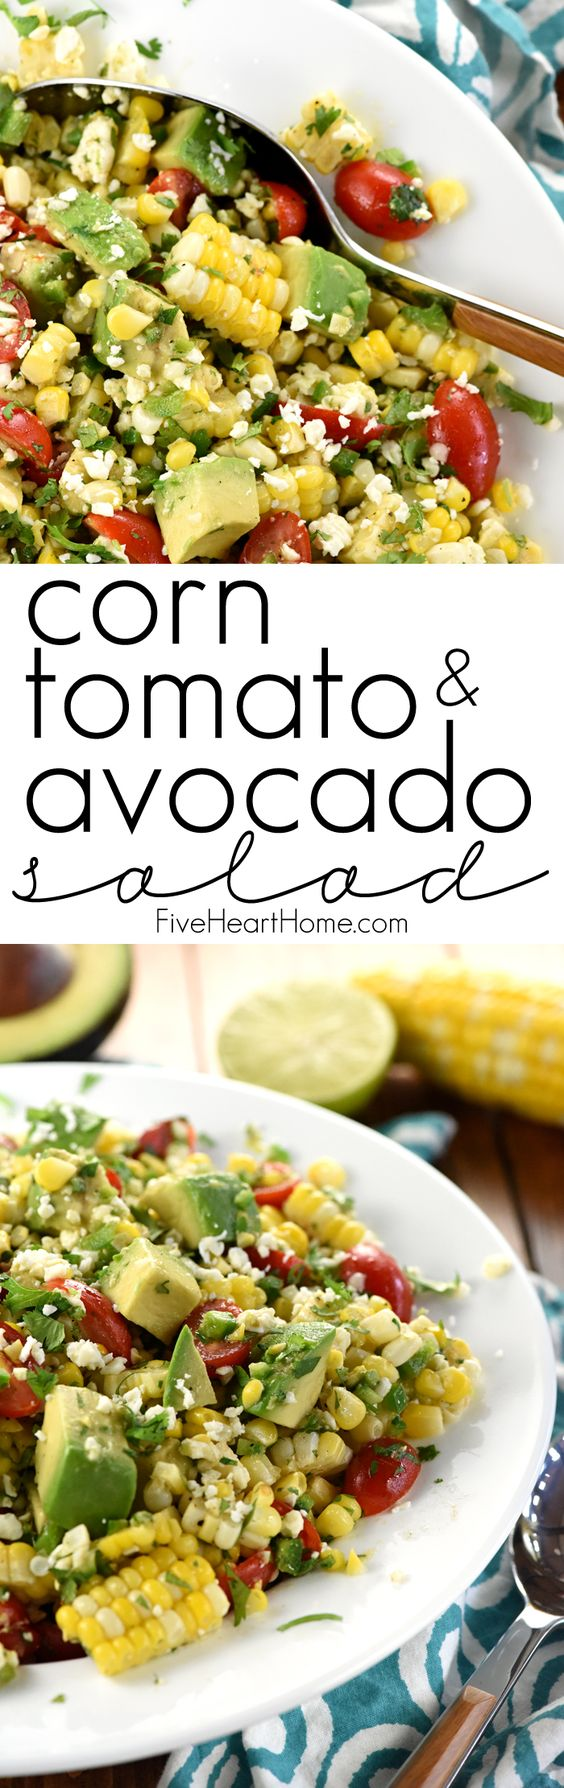 Avocado salads, Avocado and Tomatoes on Pinterest